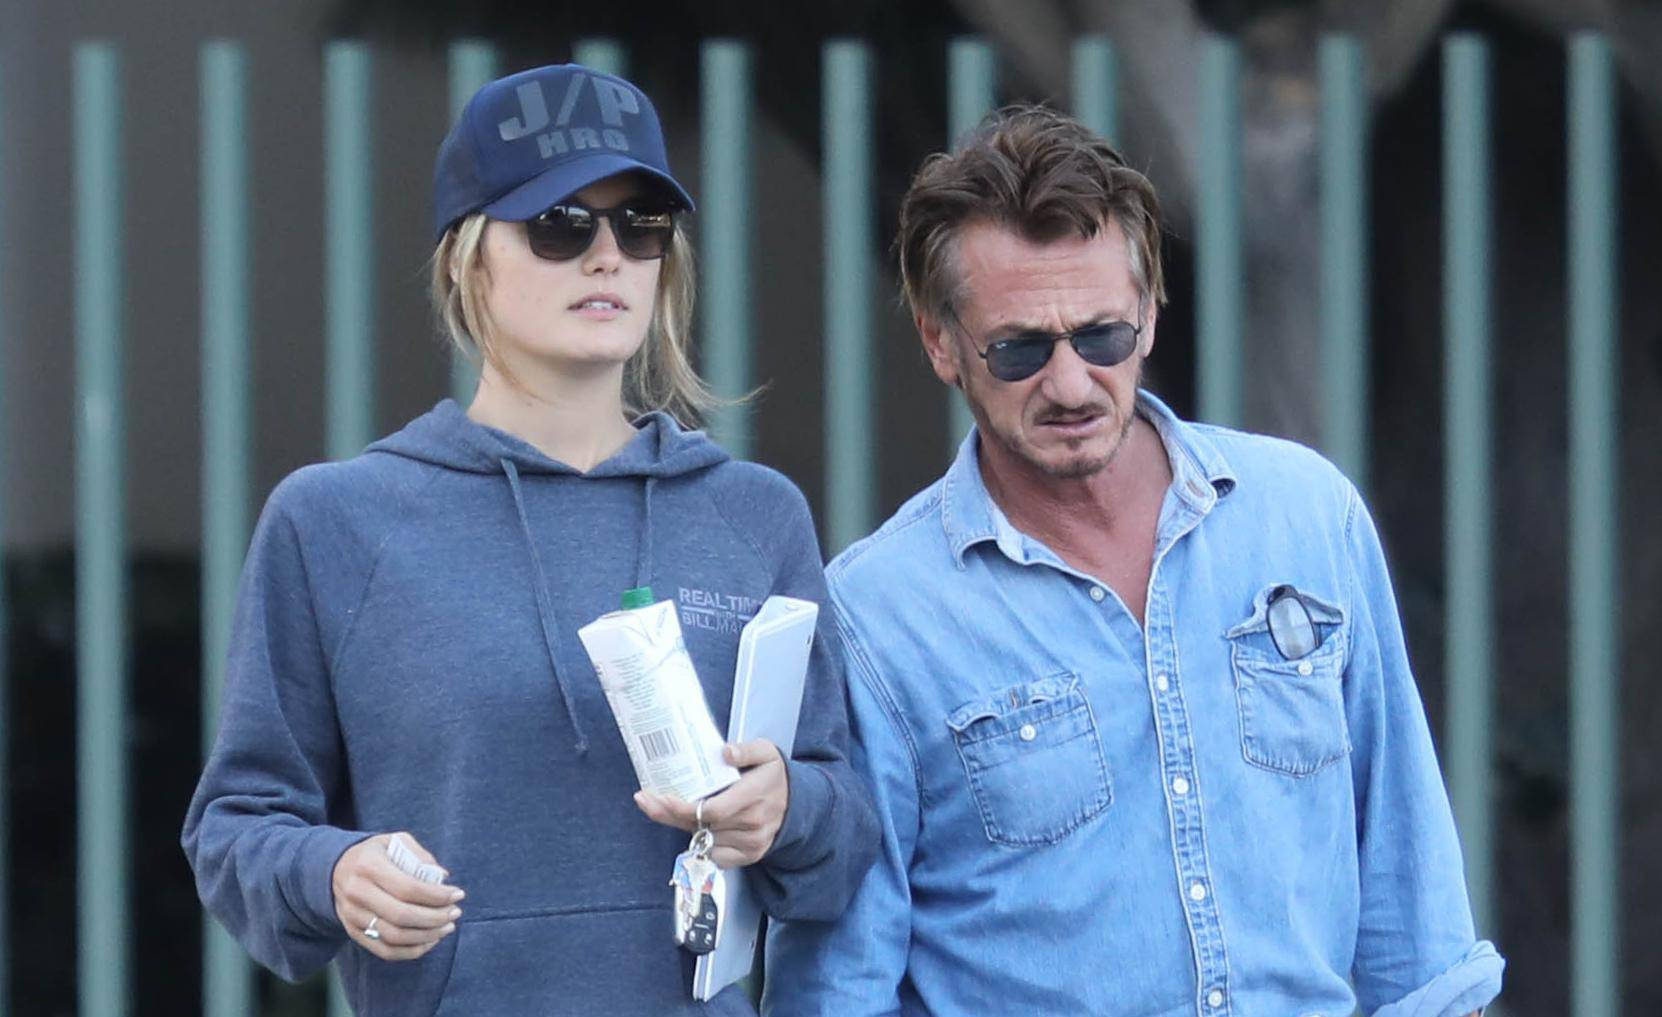 *EXCLSUIVE* Sean Penn will drive all over LA to make his new girl happy